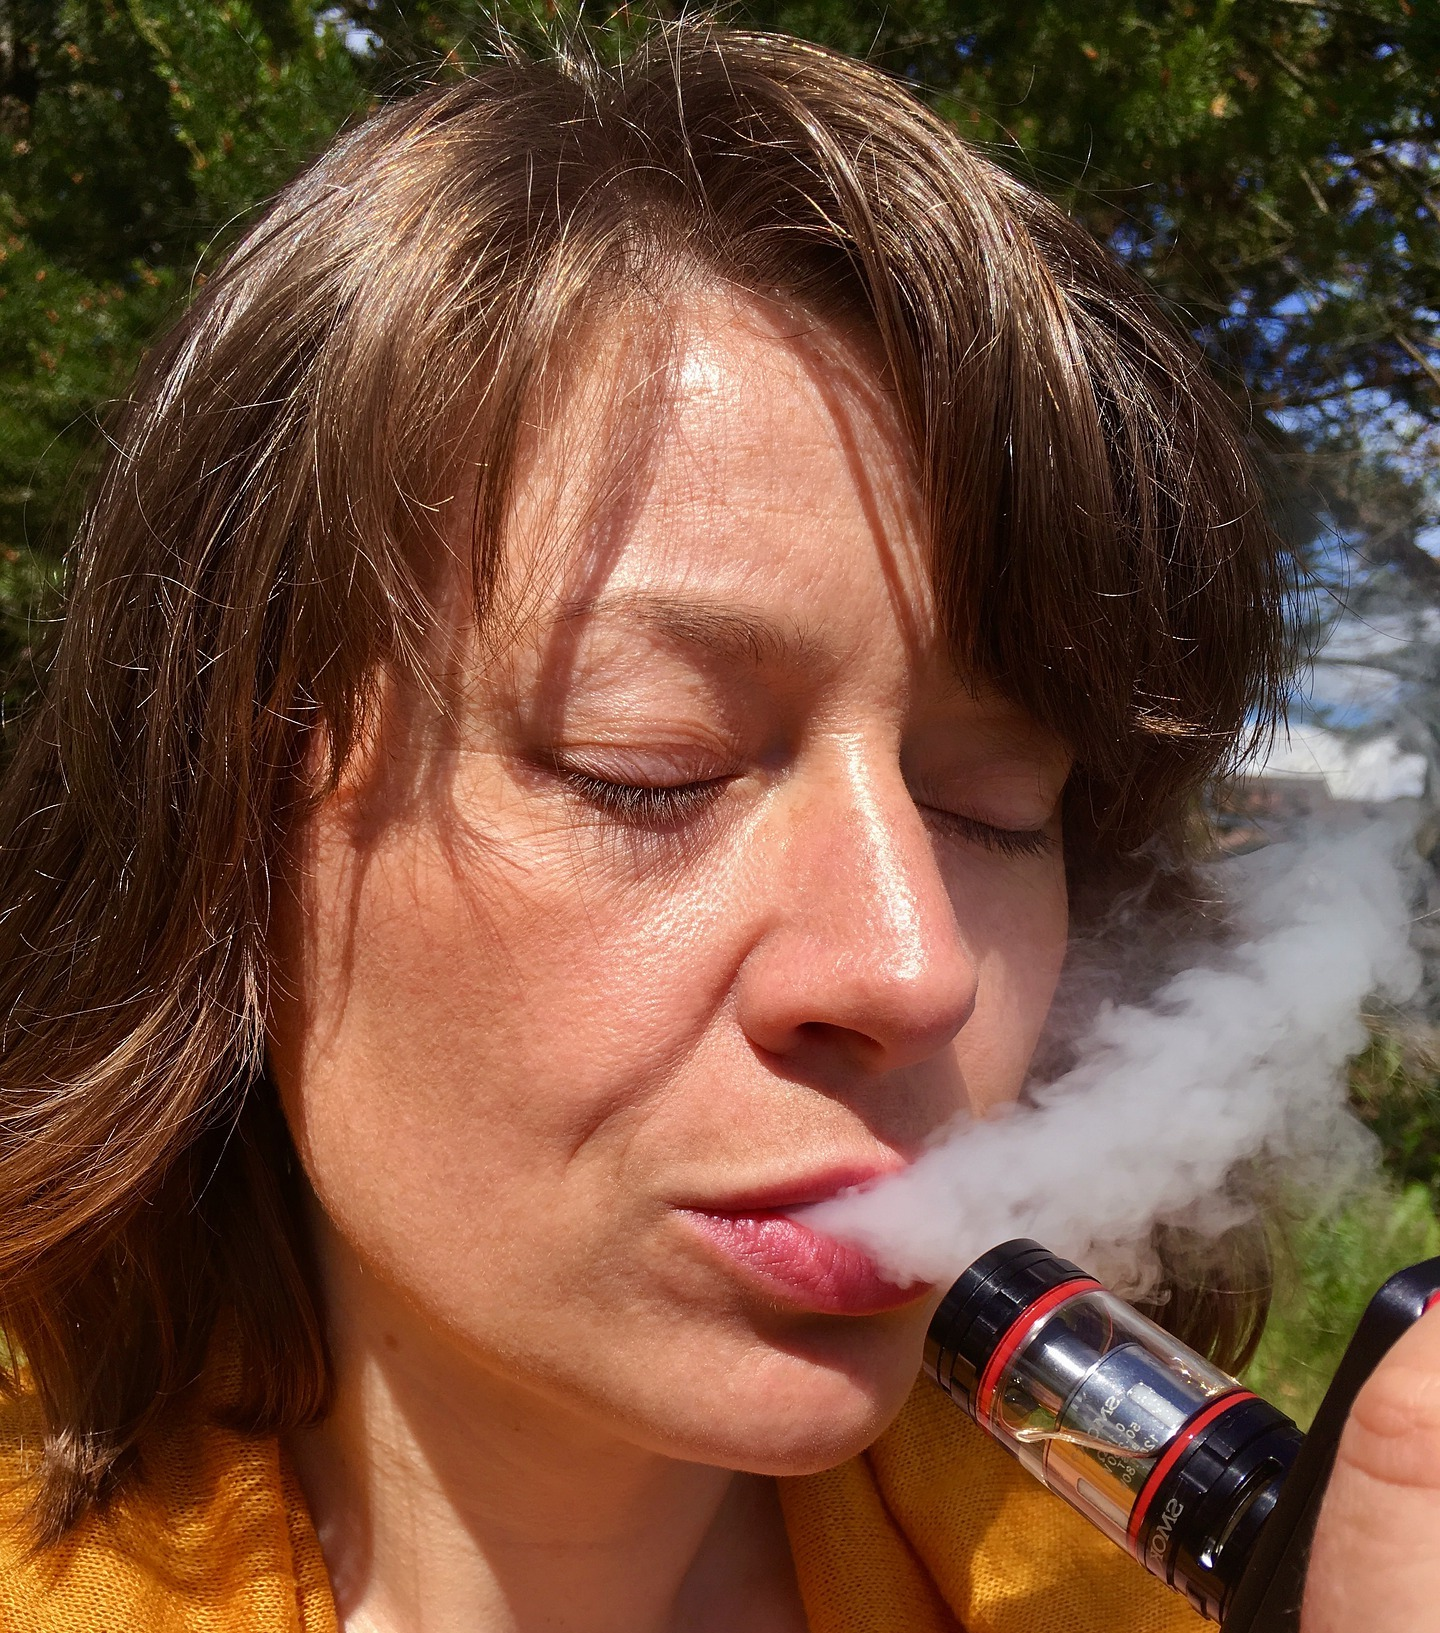 woman vaping safely with save juice